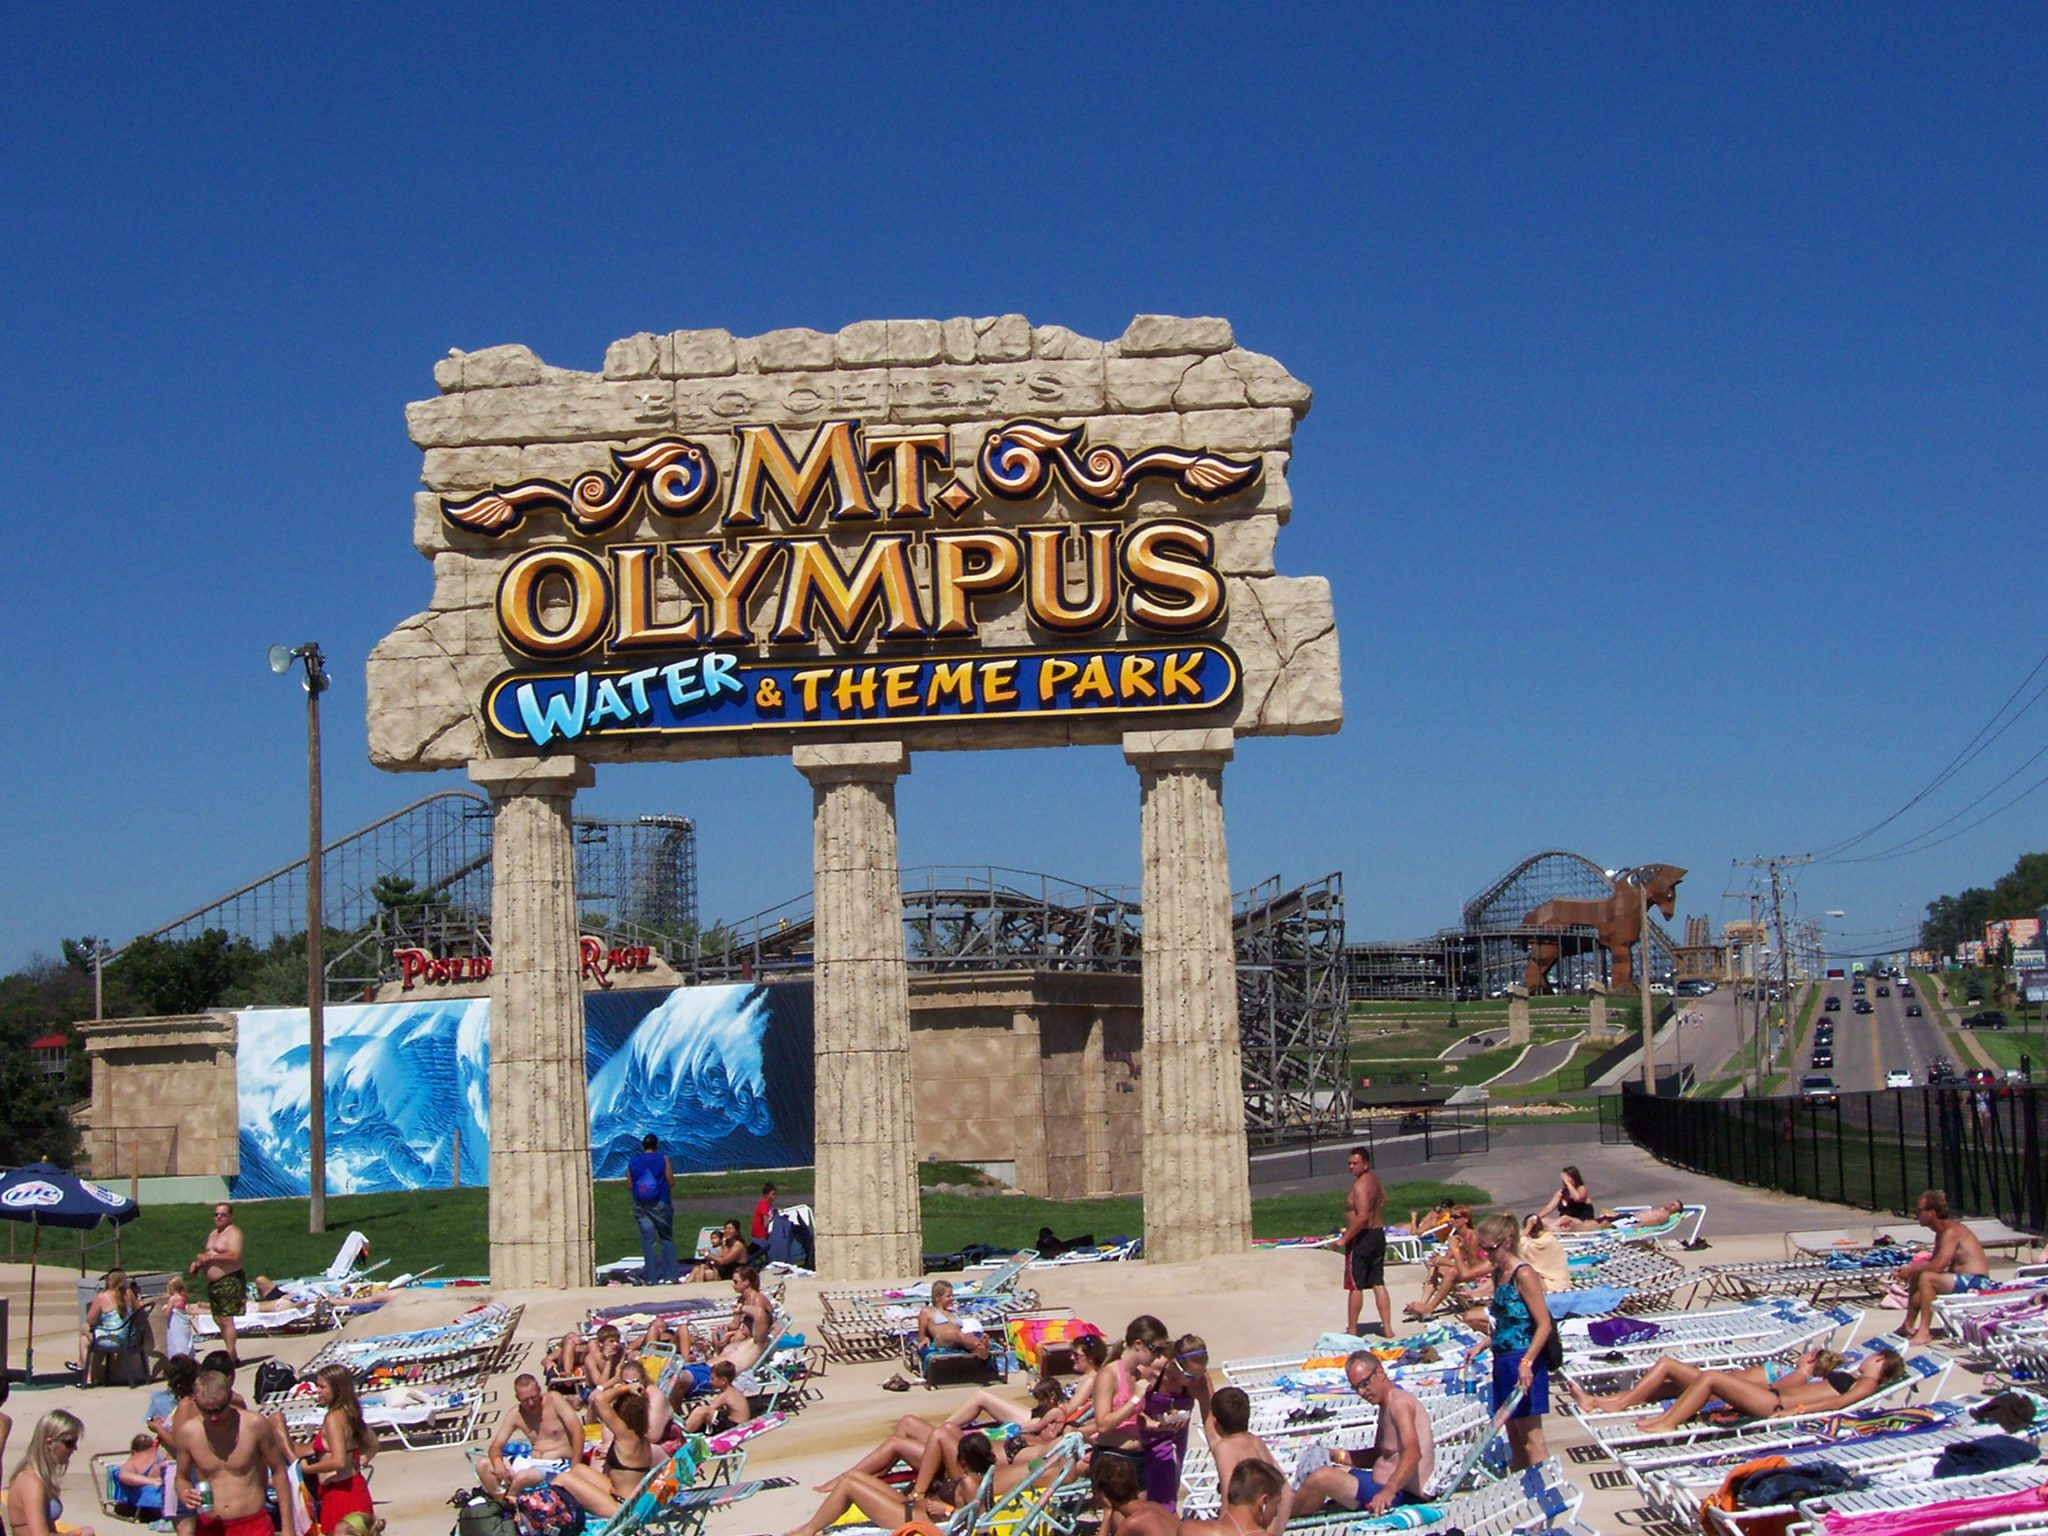 20 of the largest water parks in the world blogrope. Black Bedroom Furniture Sets. Home Design Ideas